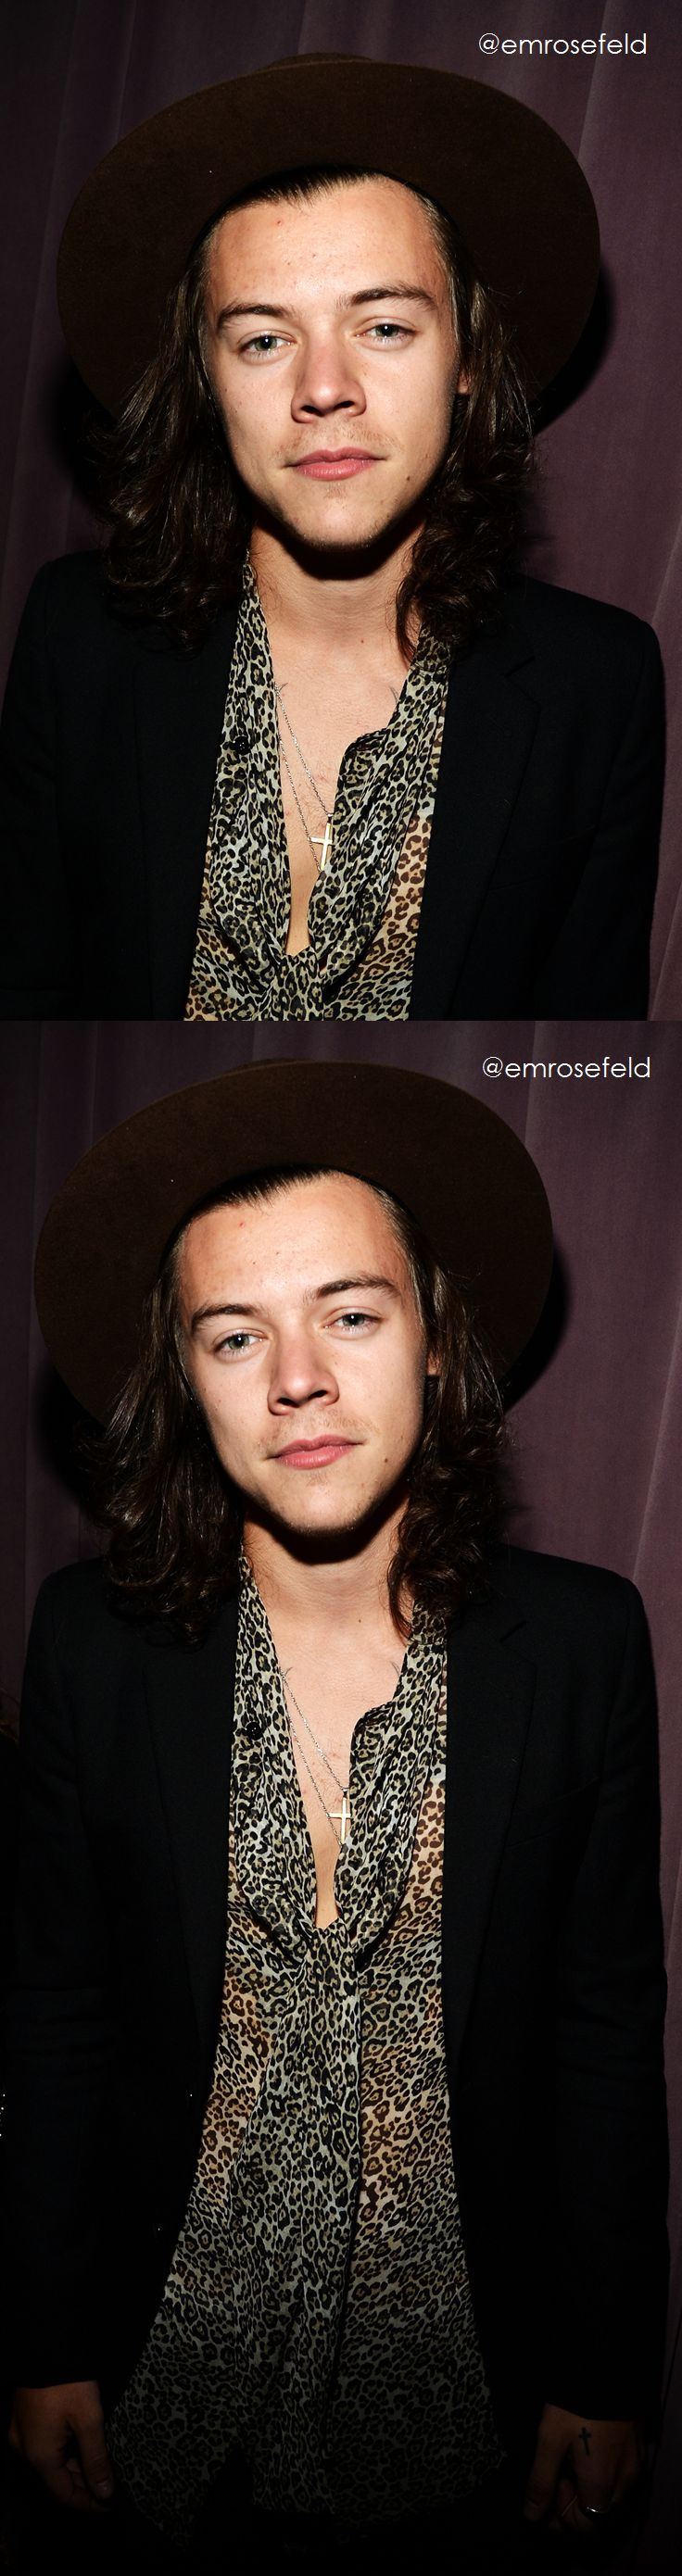 Harry Styles   at The Rolling Stones Los Angeles Club Show at The Fonda Theatre 5.20.15   @emrosefeld  